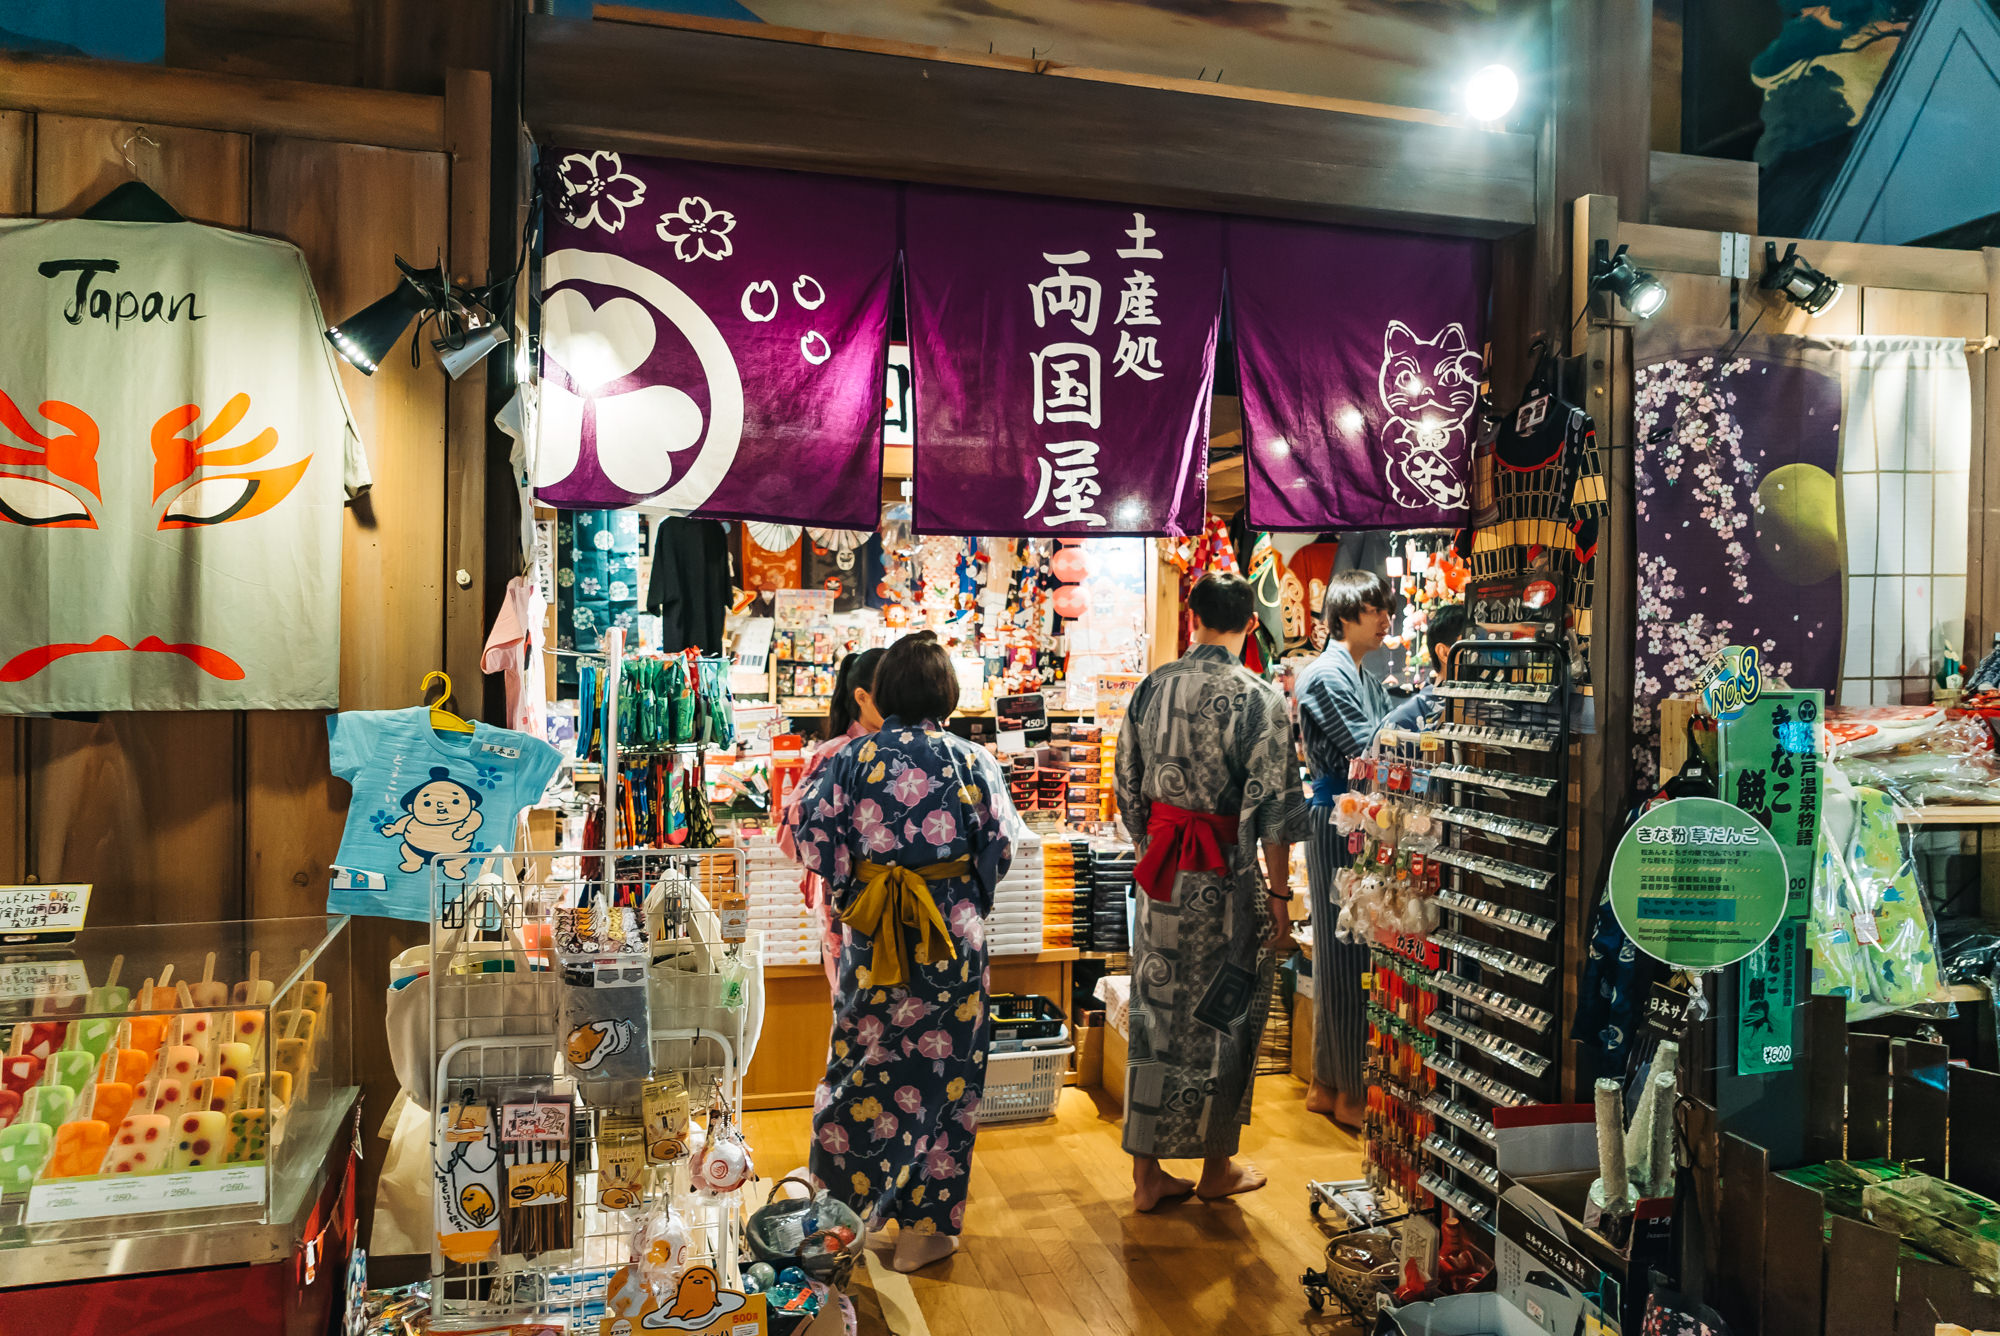 Gift shop with tons of fun souvenirs